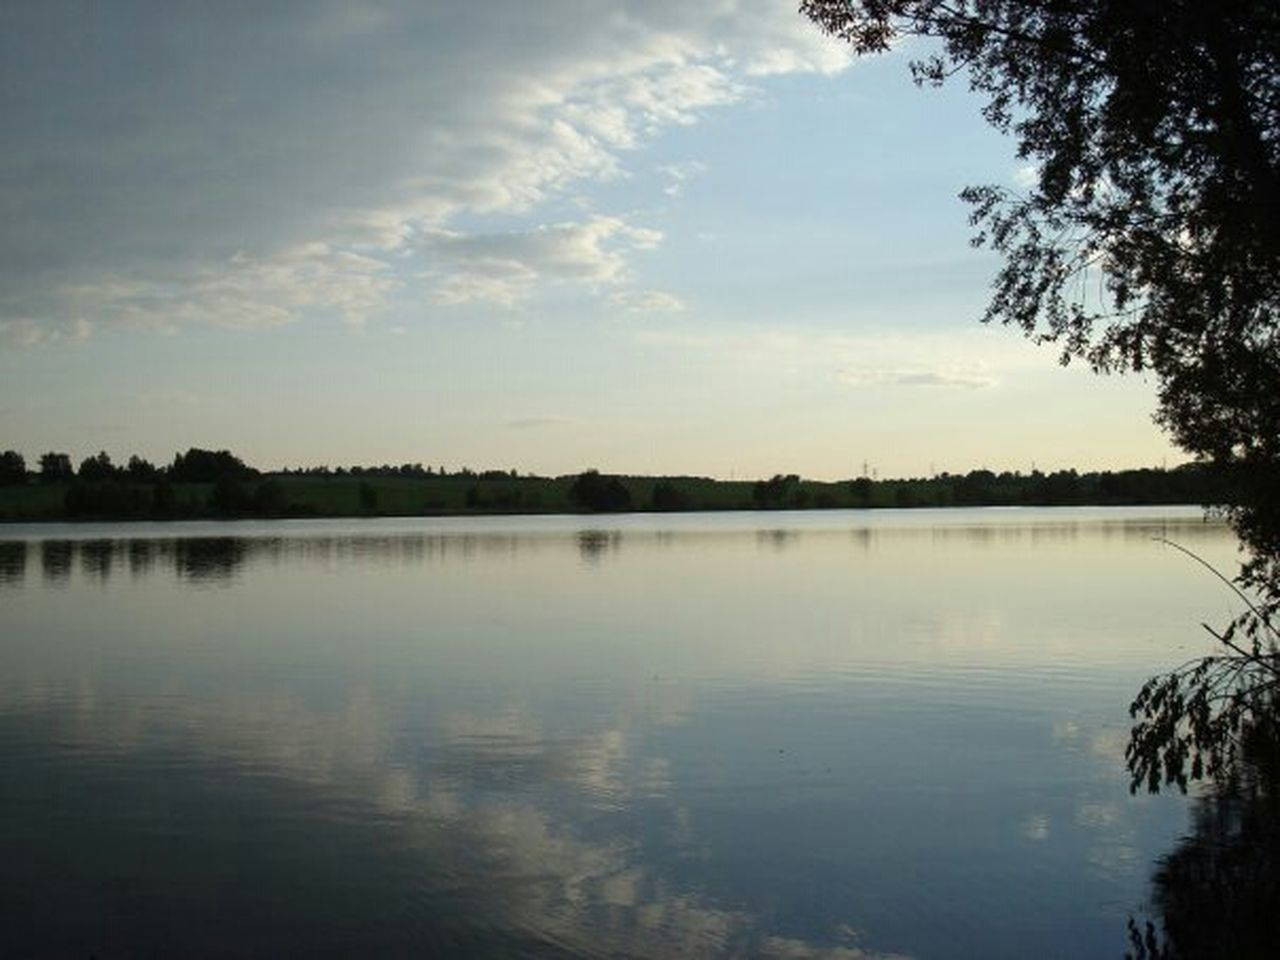 reflection, tree, water, lake, tranquil scene, sky, tranquility, nature, scenics, outdoors, cloud - sky, beauty in nature, no people, day